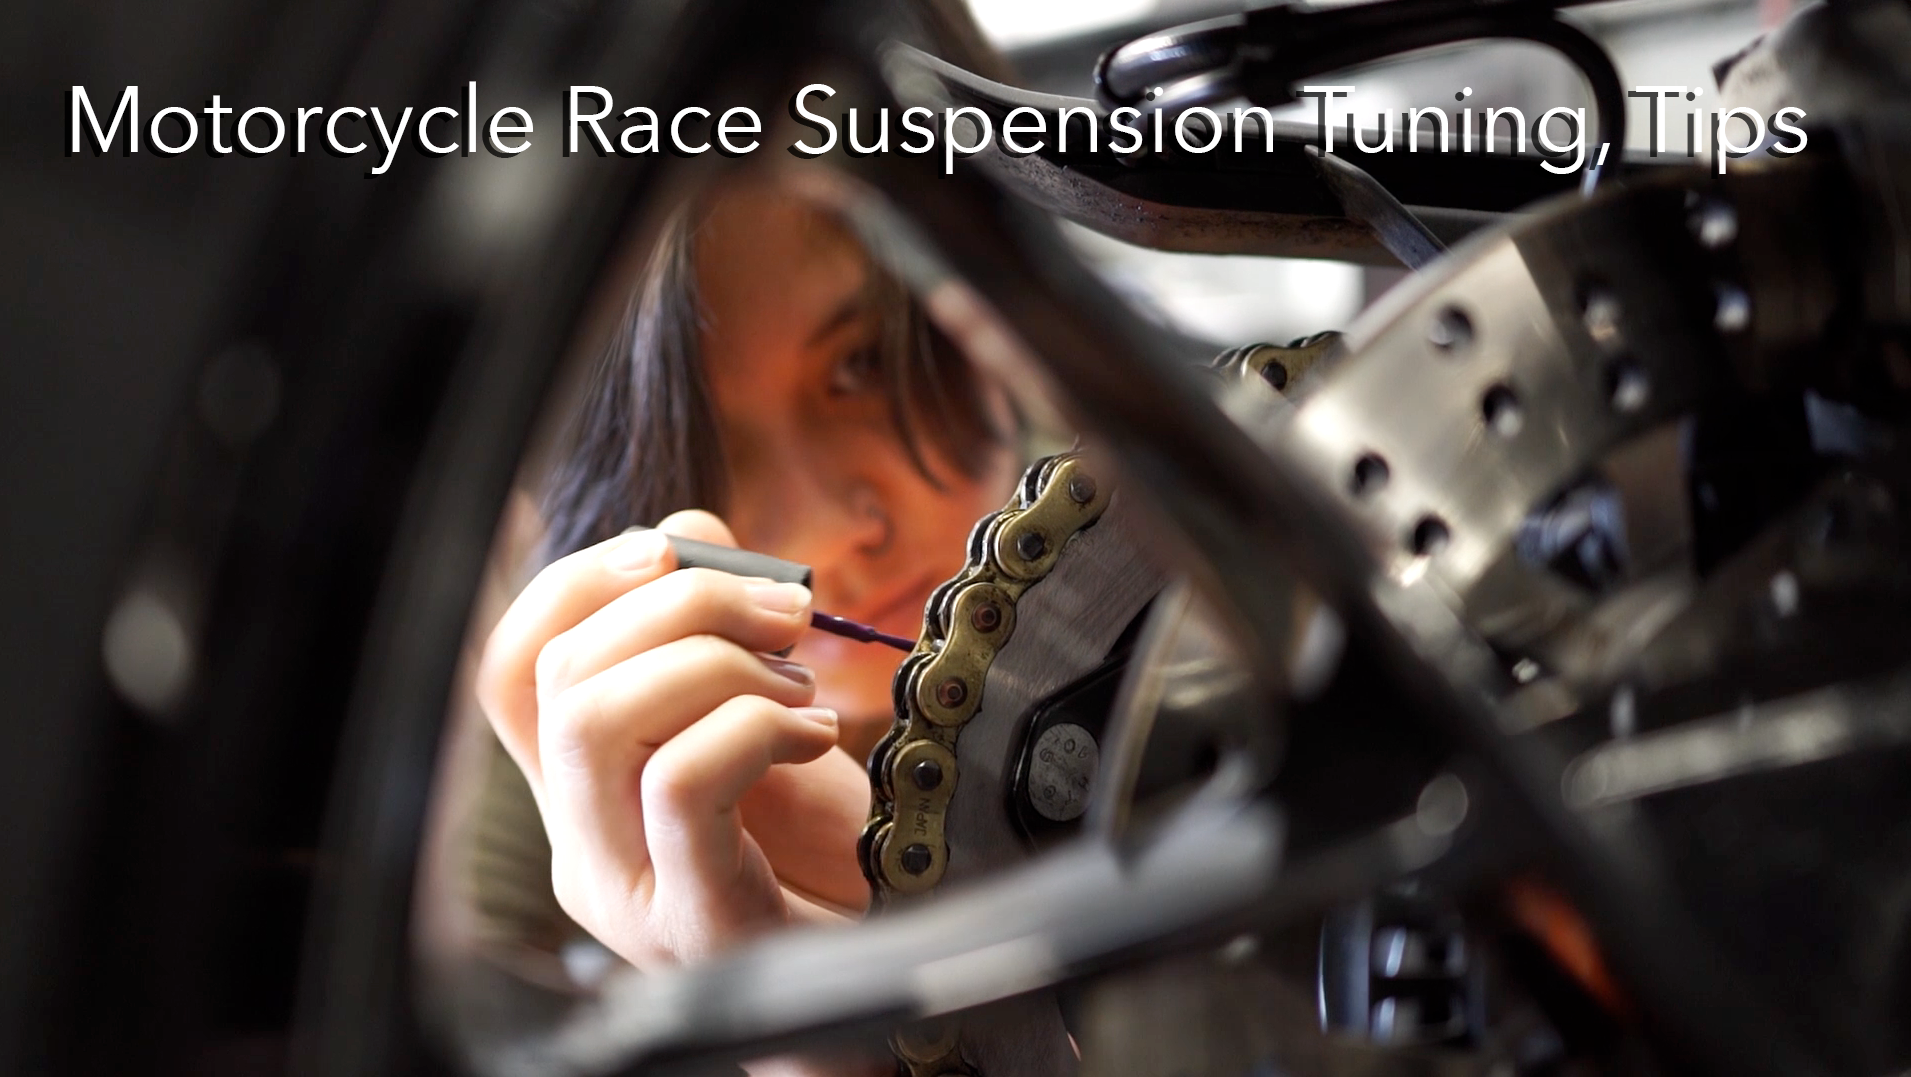 roadracing suspension tuning